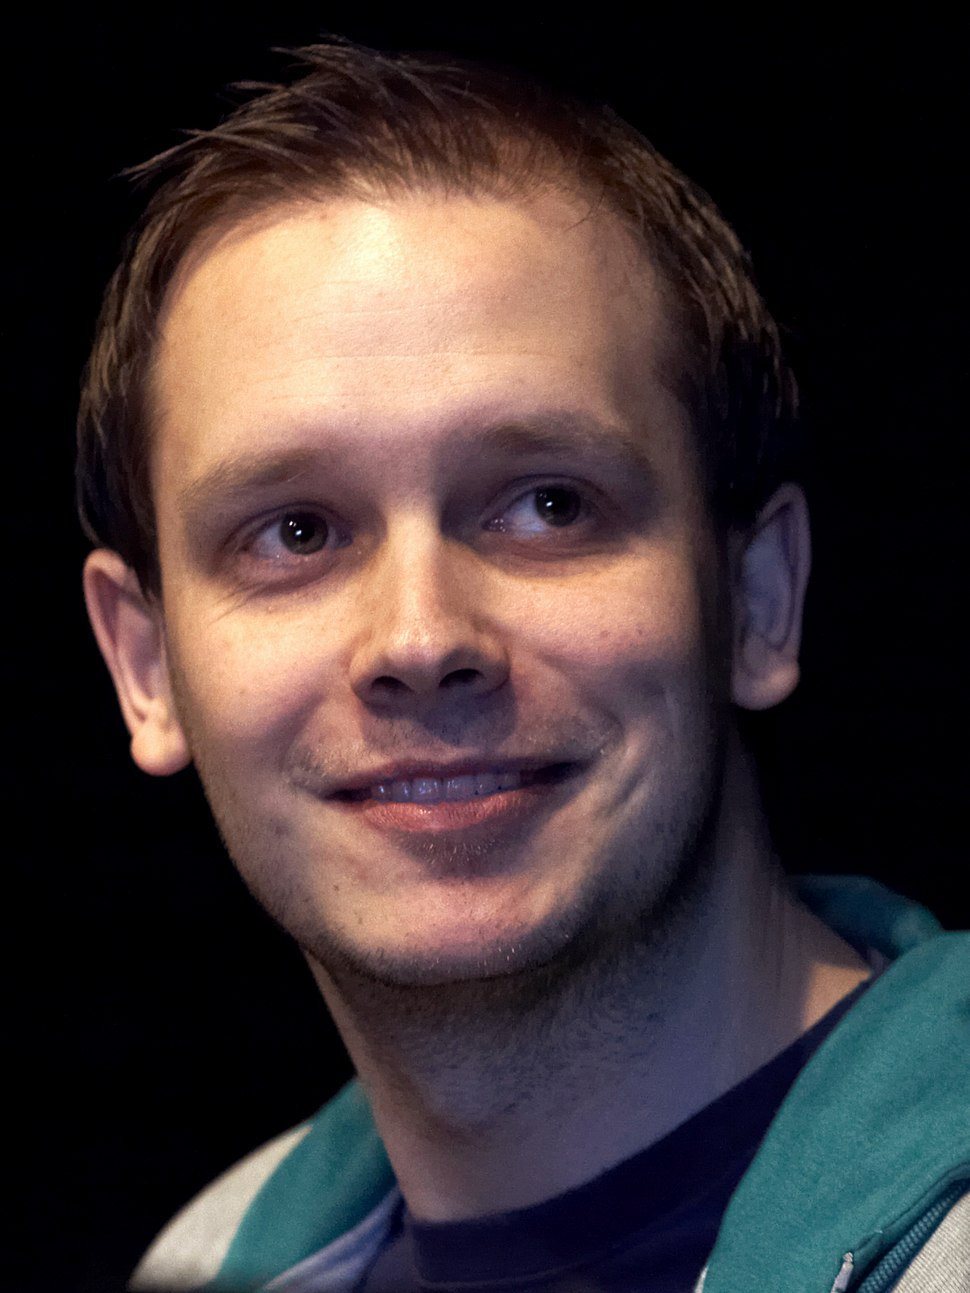 Peter sunde close up